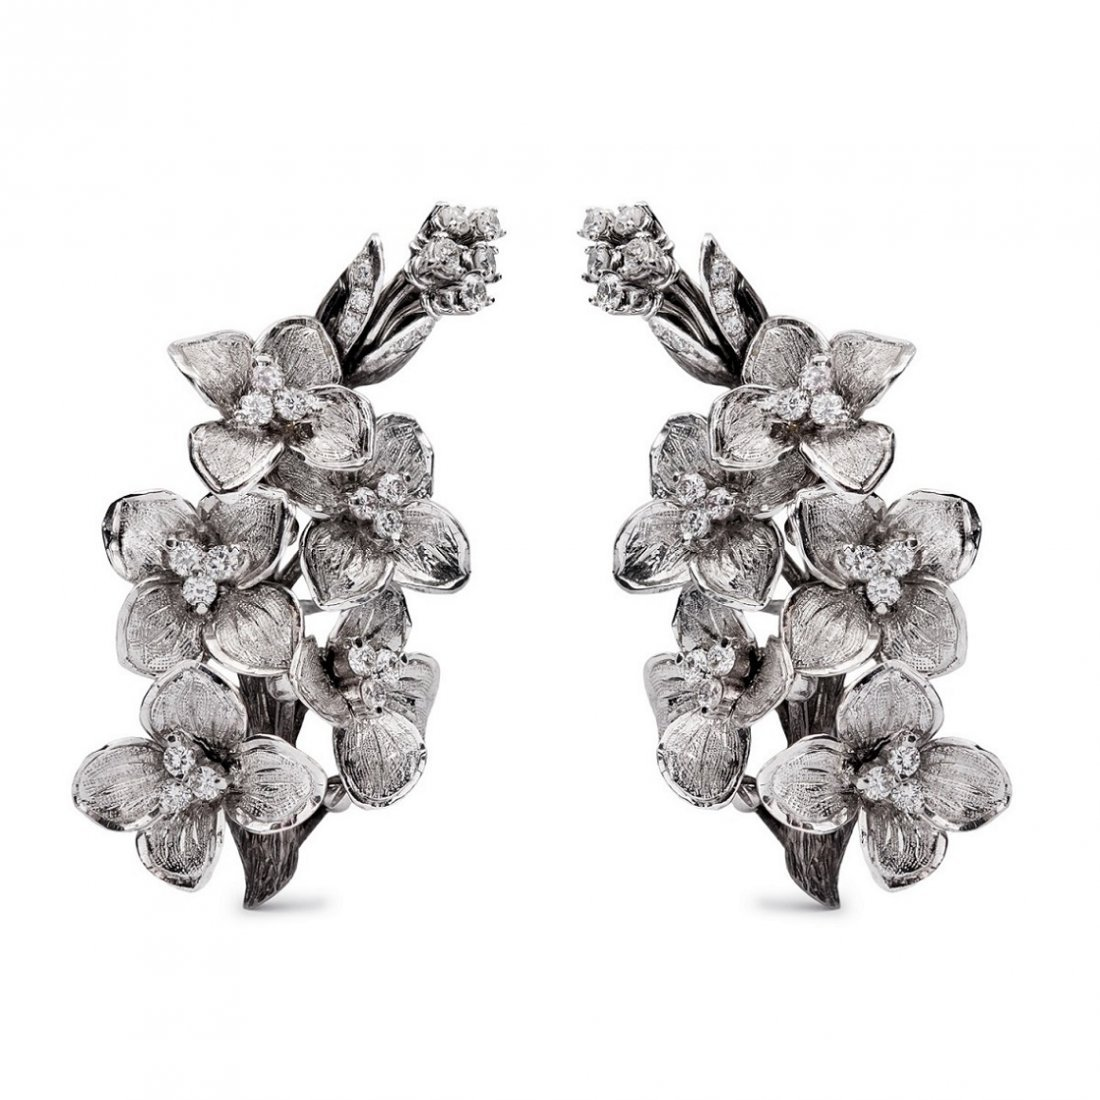 A pair of floral brooches with diamond accents